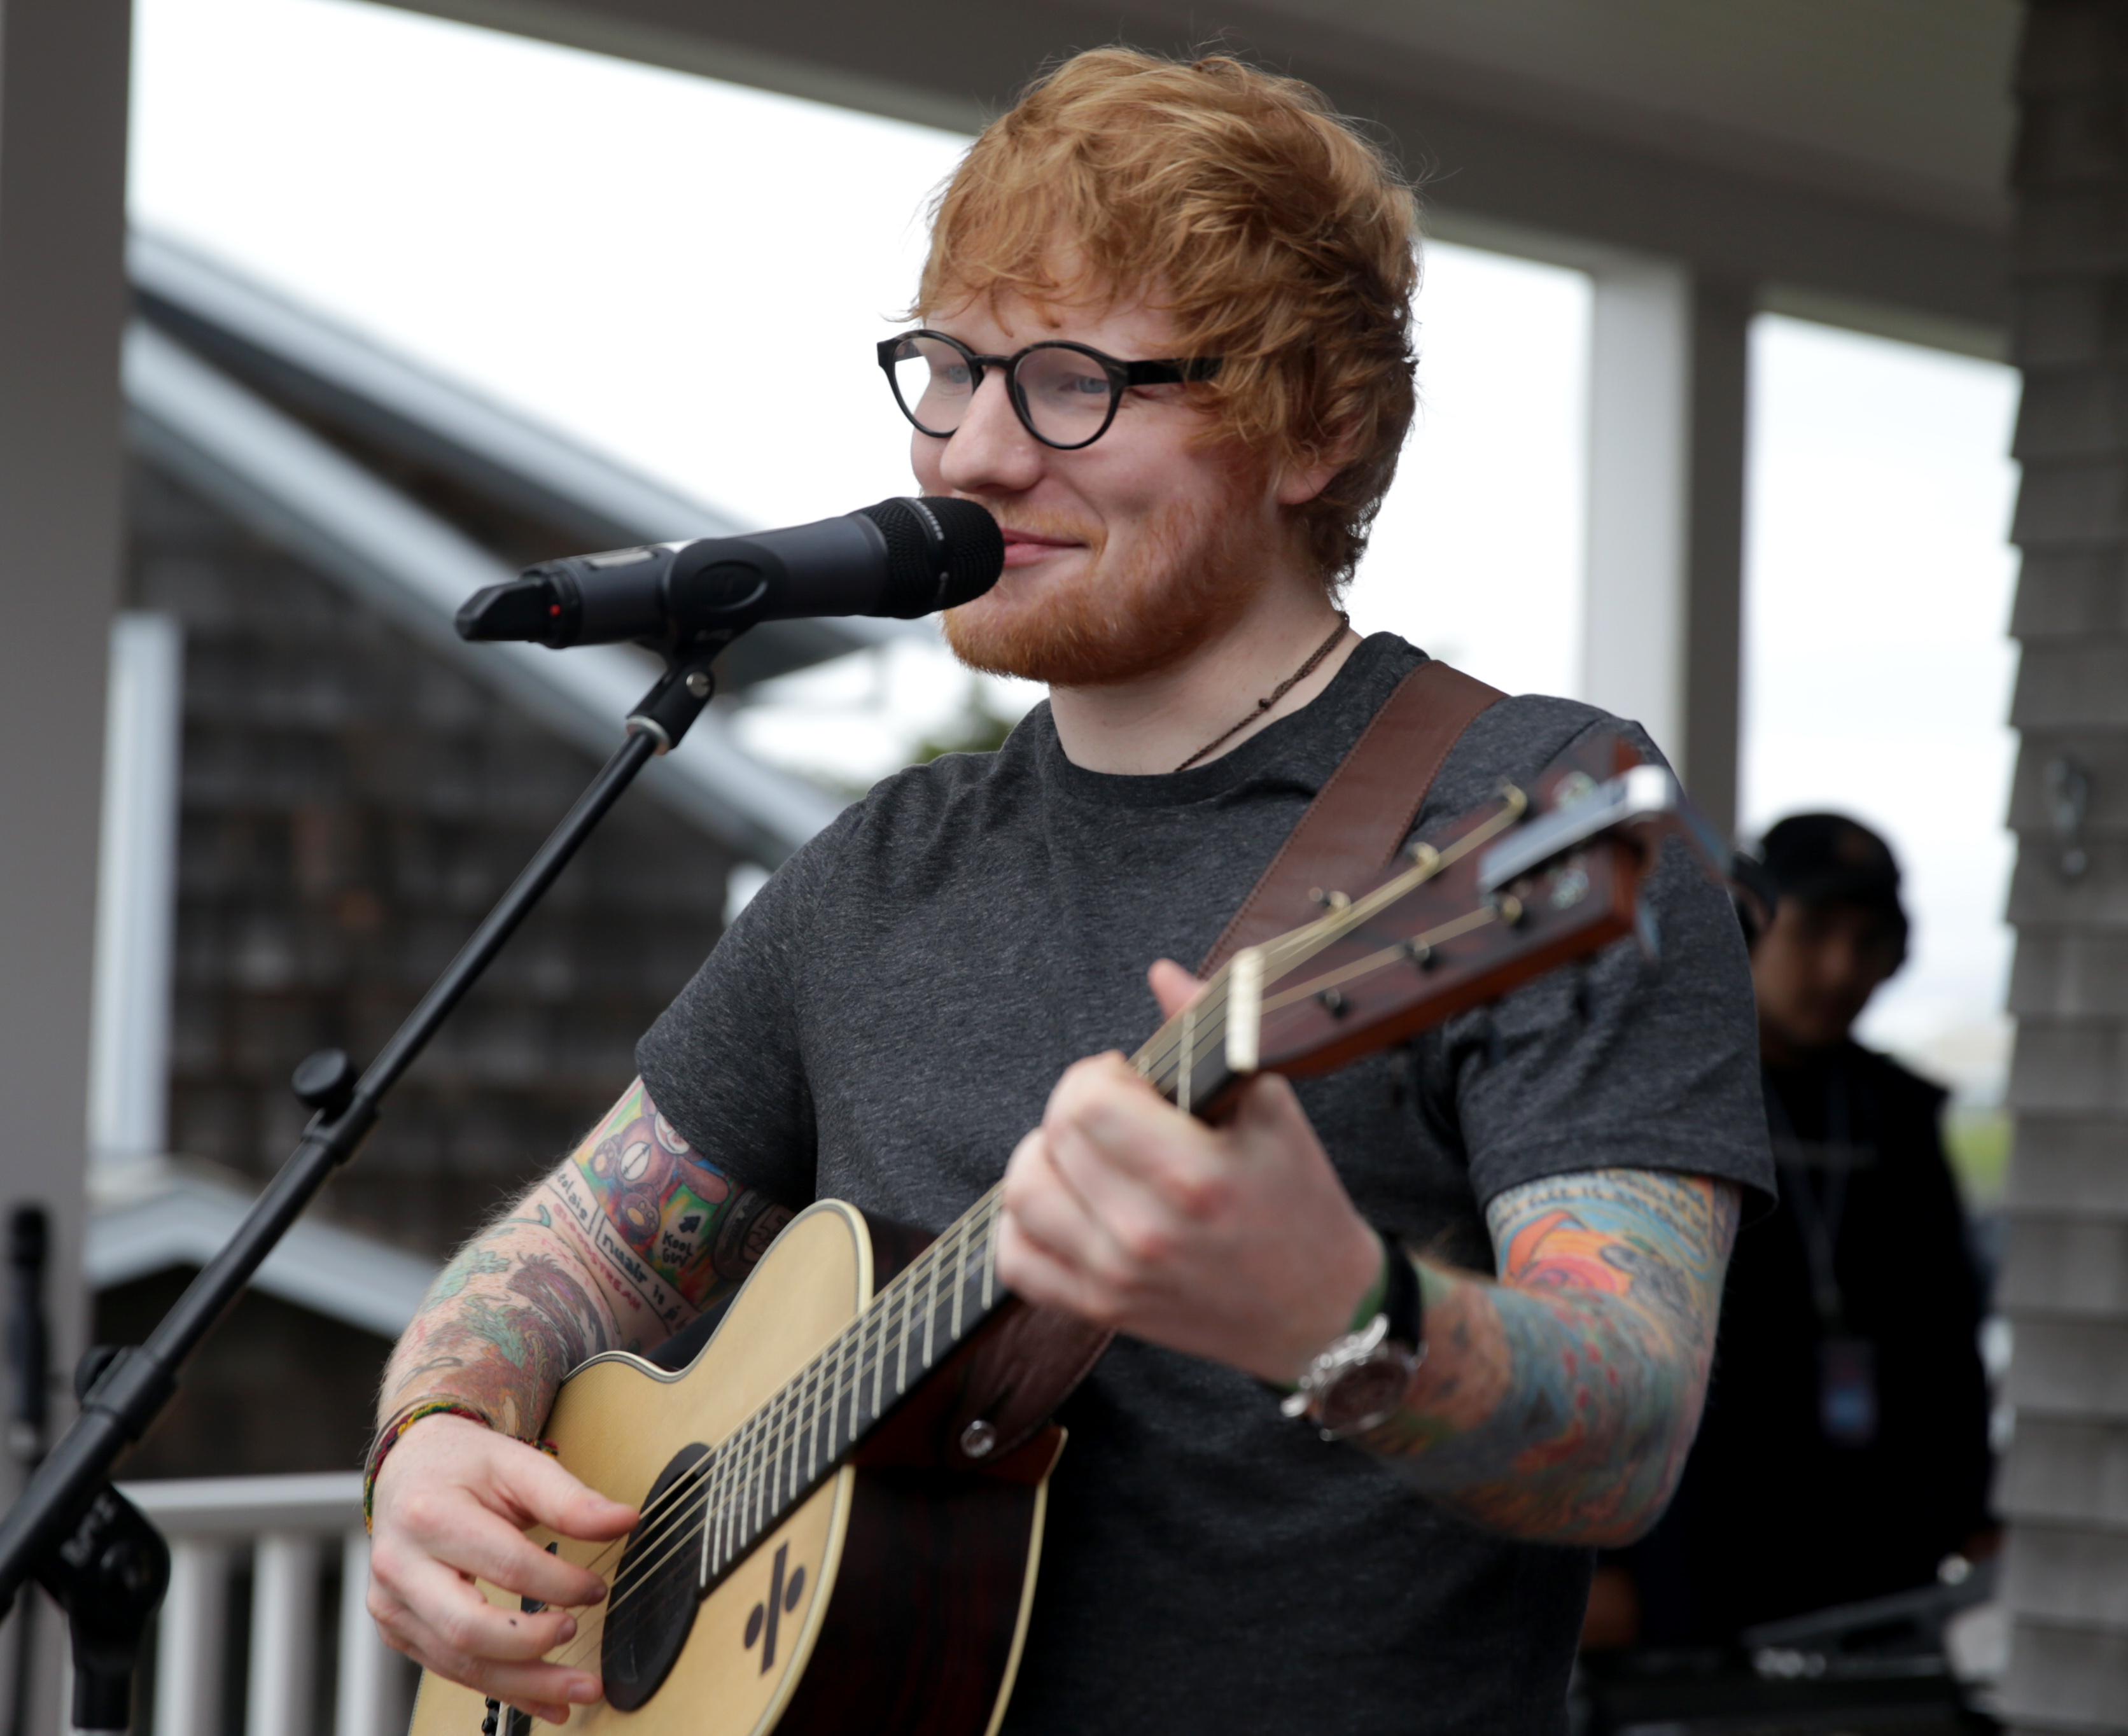 BOURNE, MA - JULY 14: Musician Ed Sheeran performs at the Mix 104.1 Beach House in Bourne, Mass., on July 14, 2017.